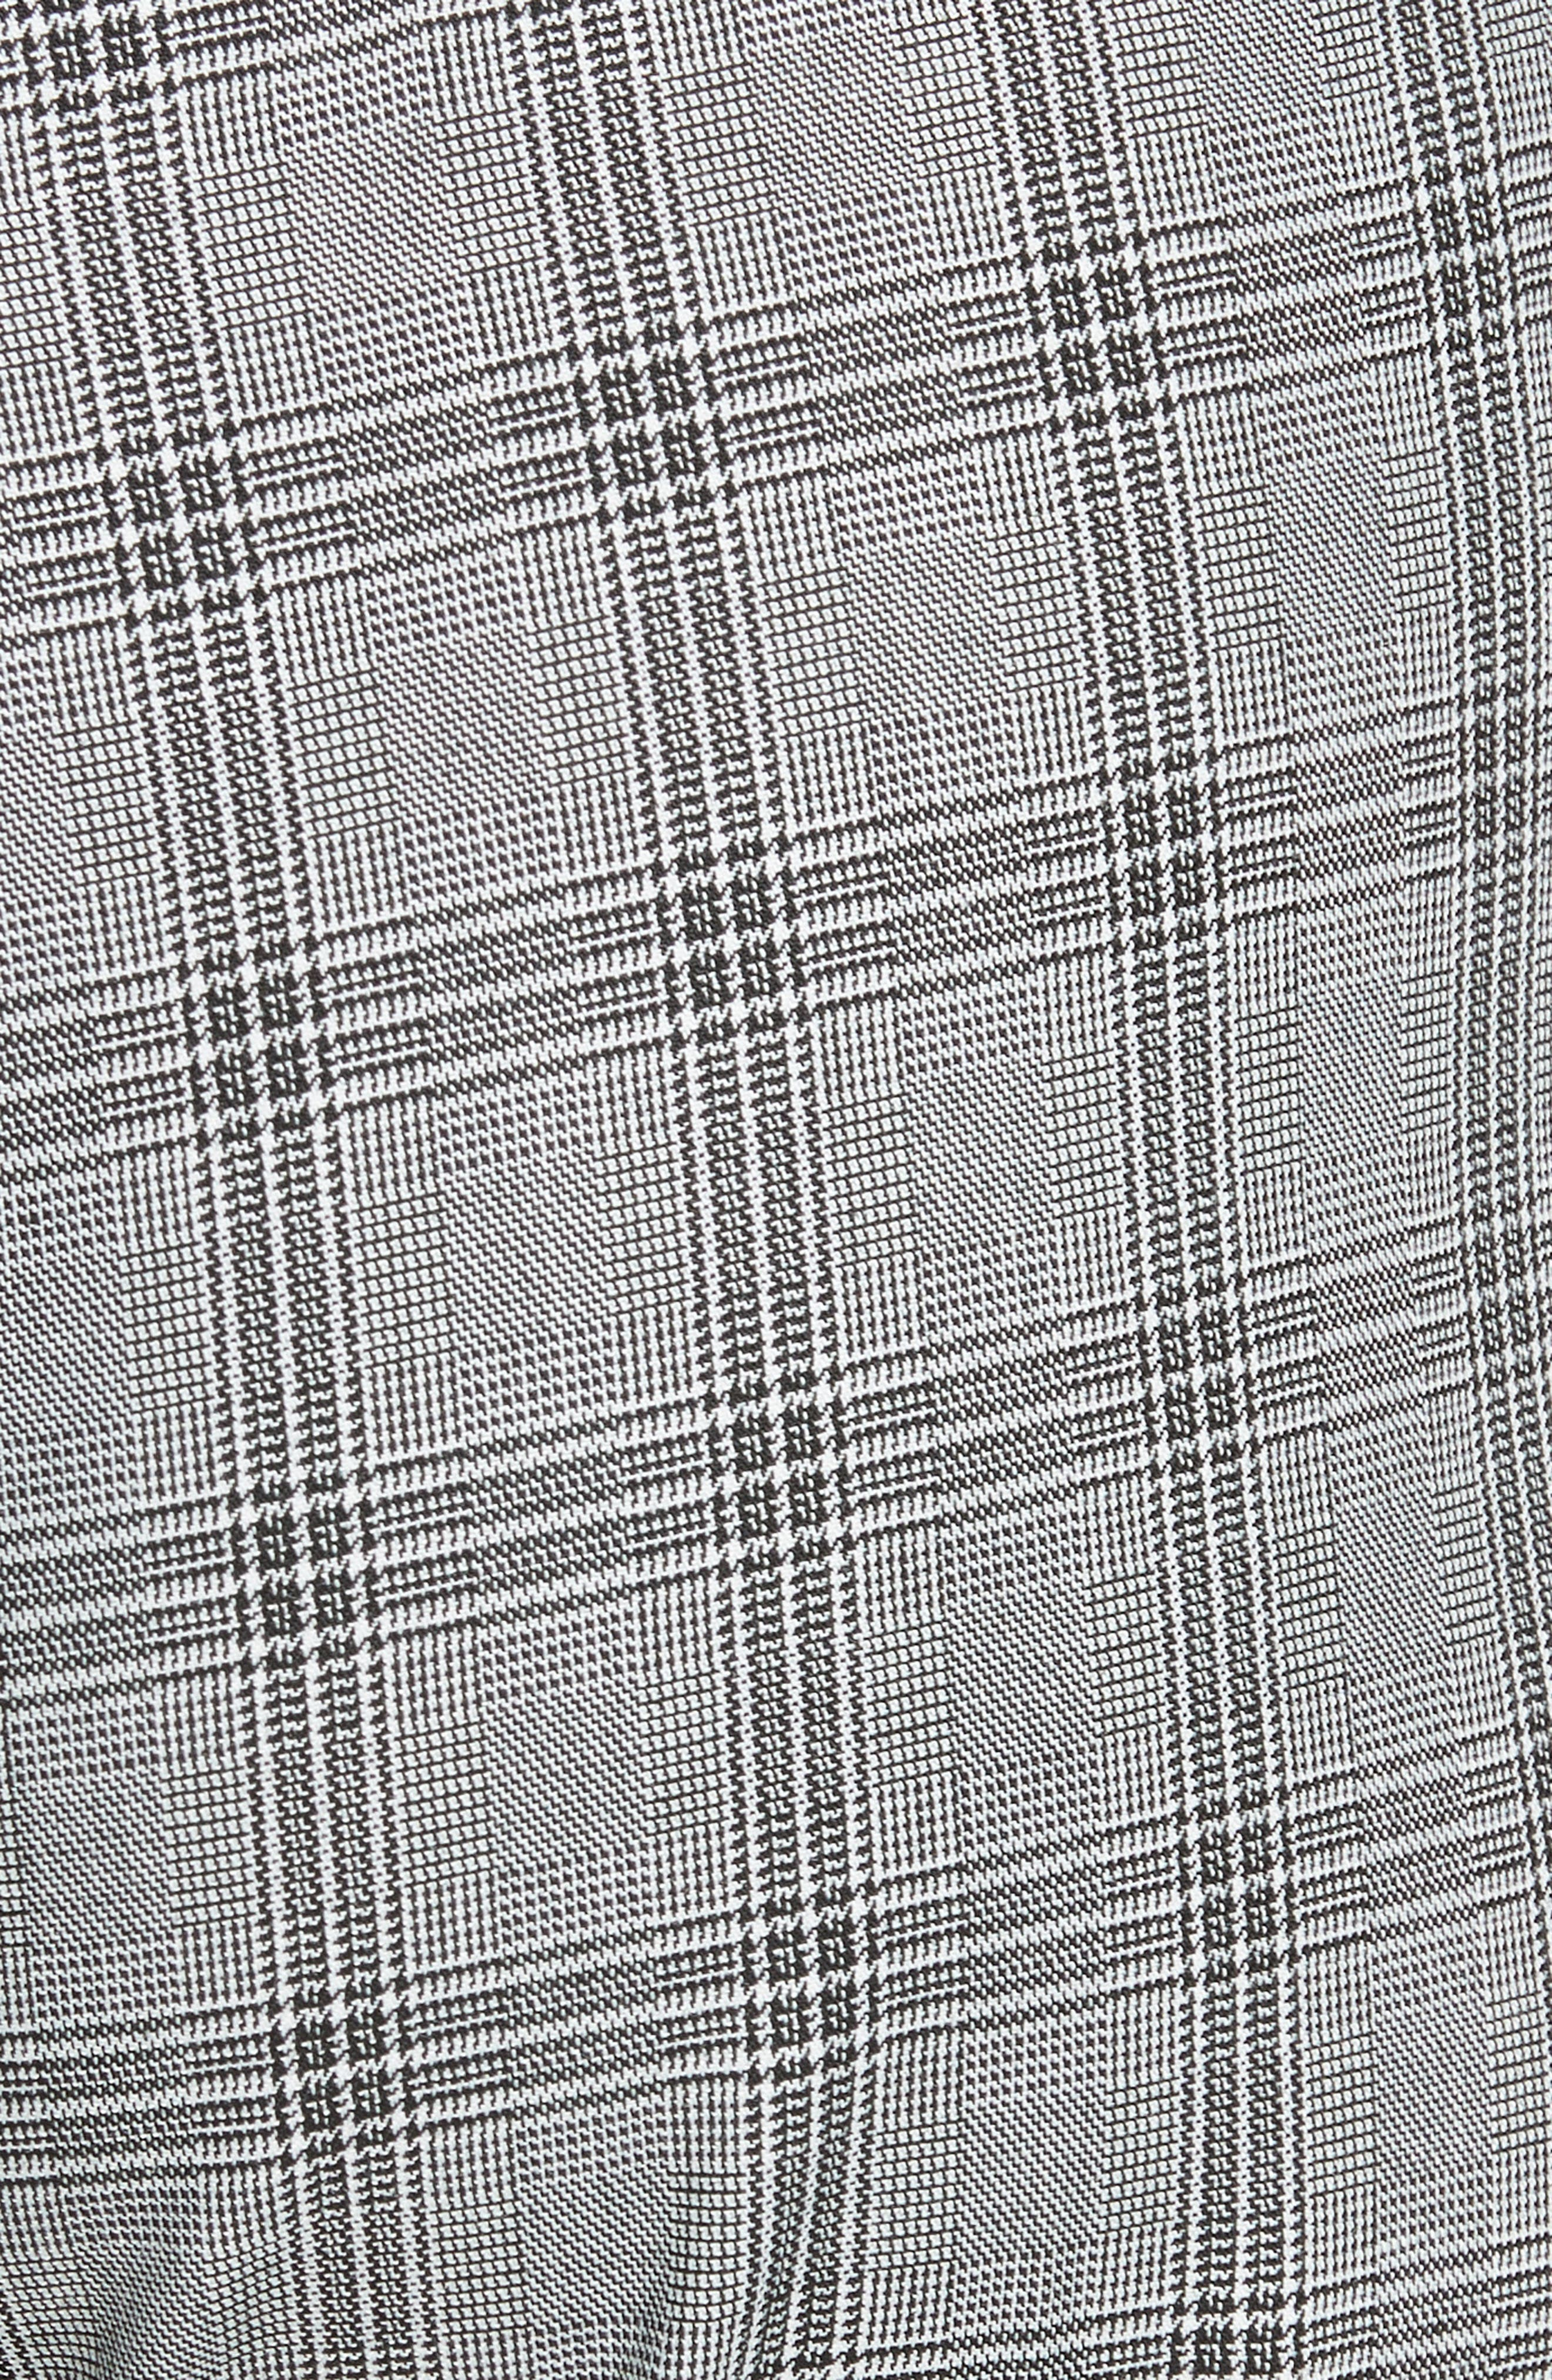 Ted Working Title Ristat Check Plaid Trousers,                             Alternate thumbnail 5, color,                             GREY